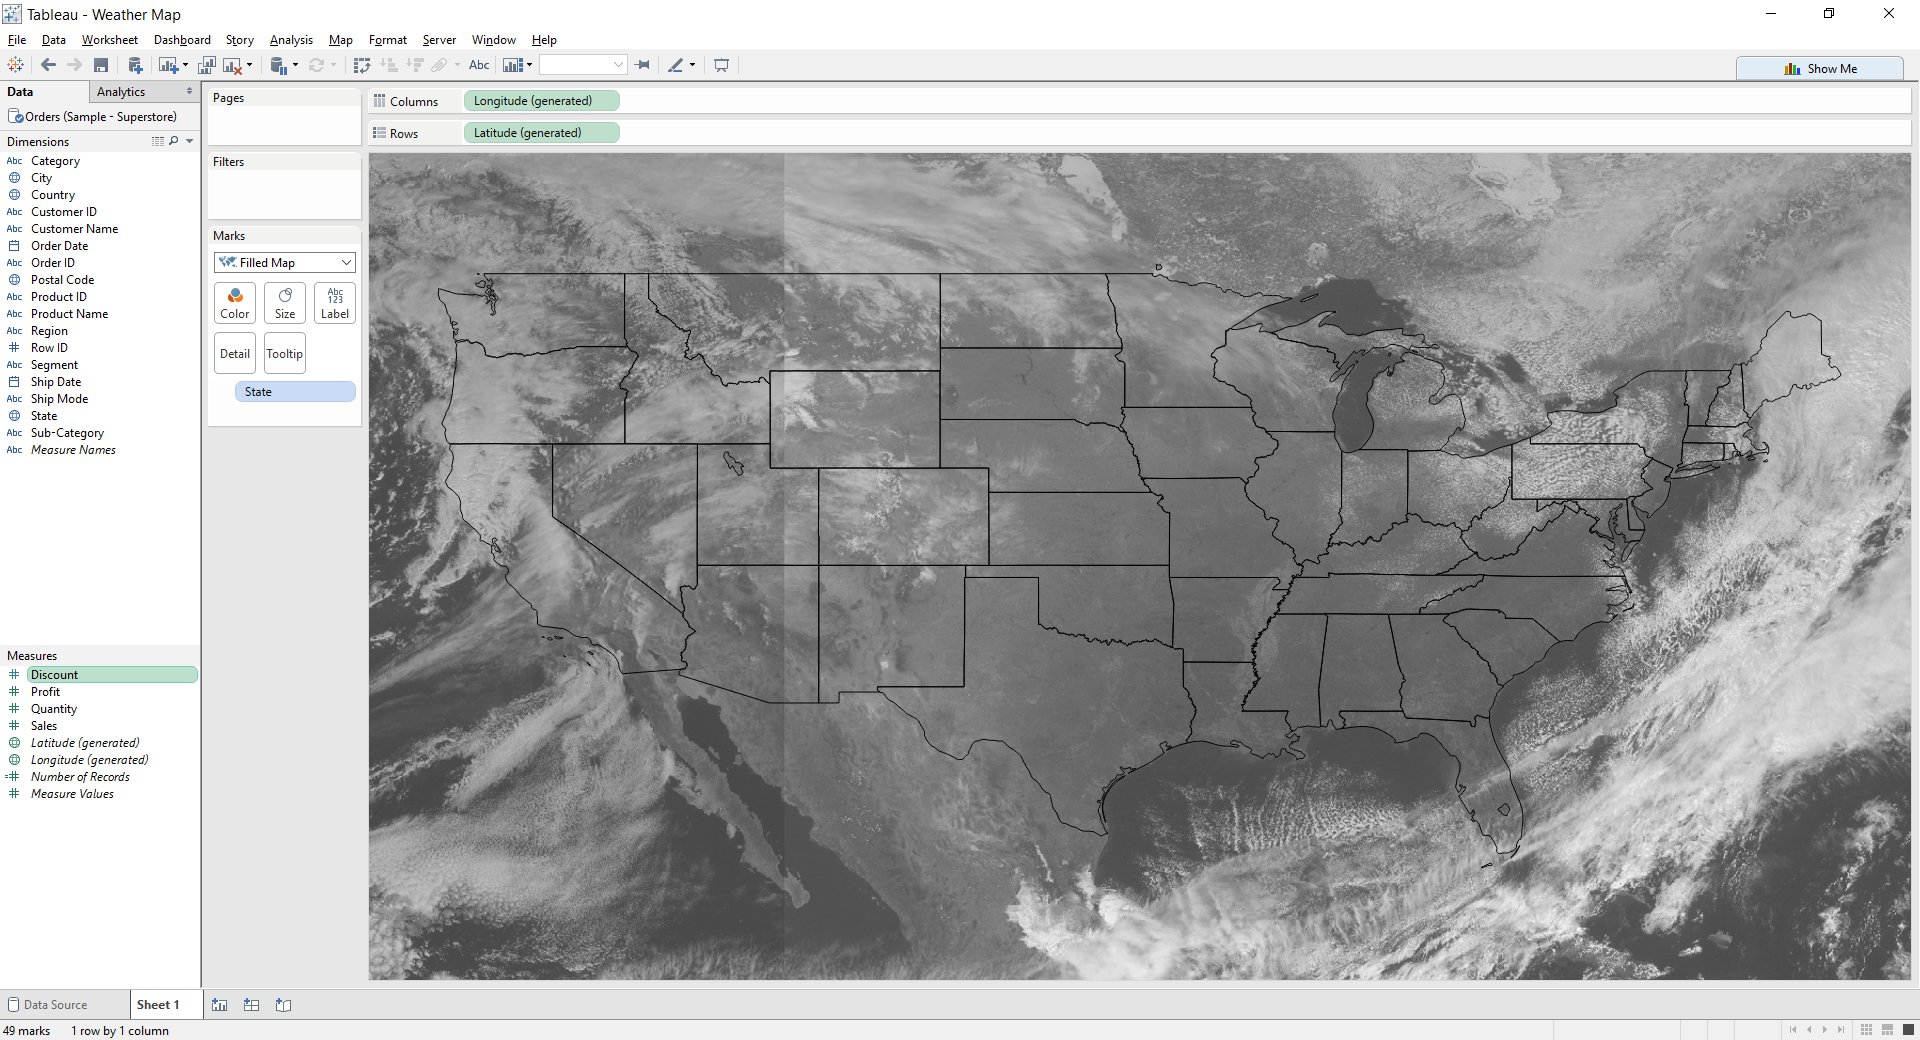 Tableau : Cloud Cover Map